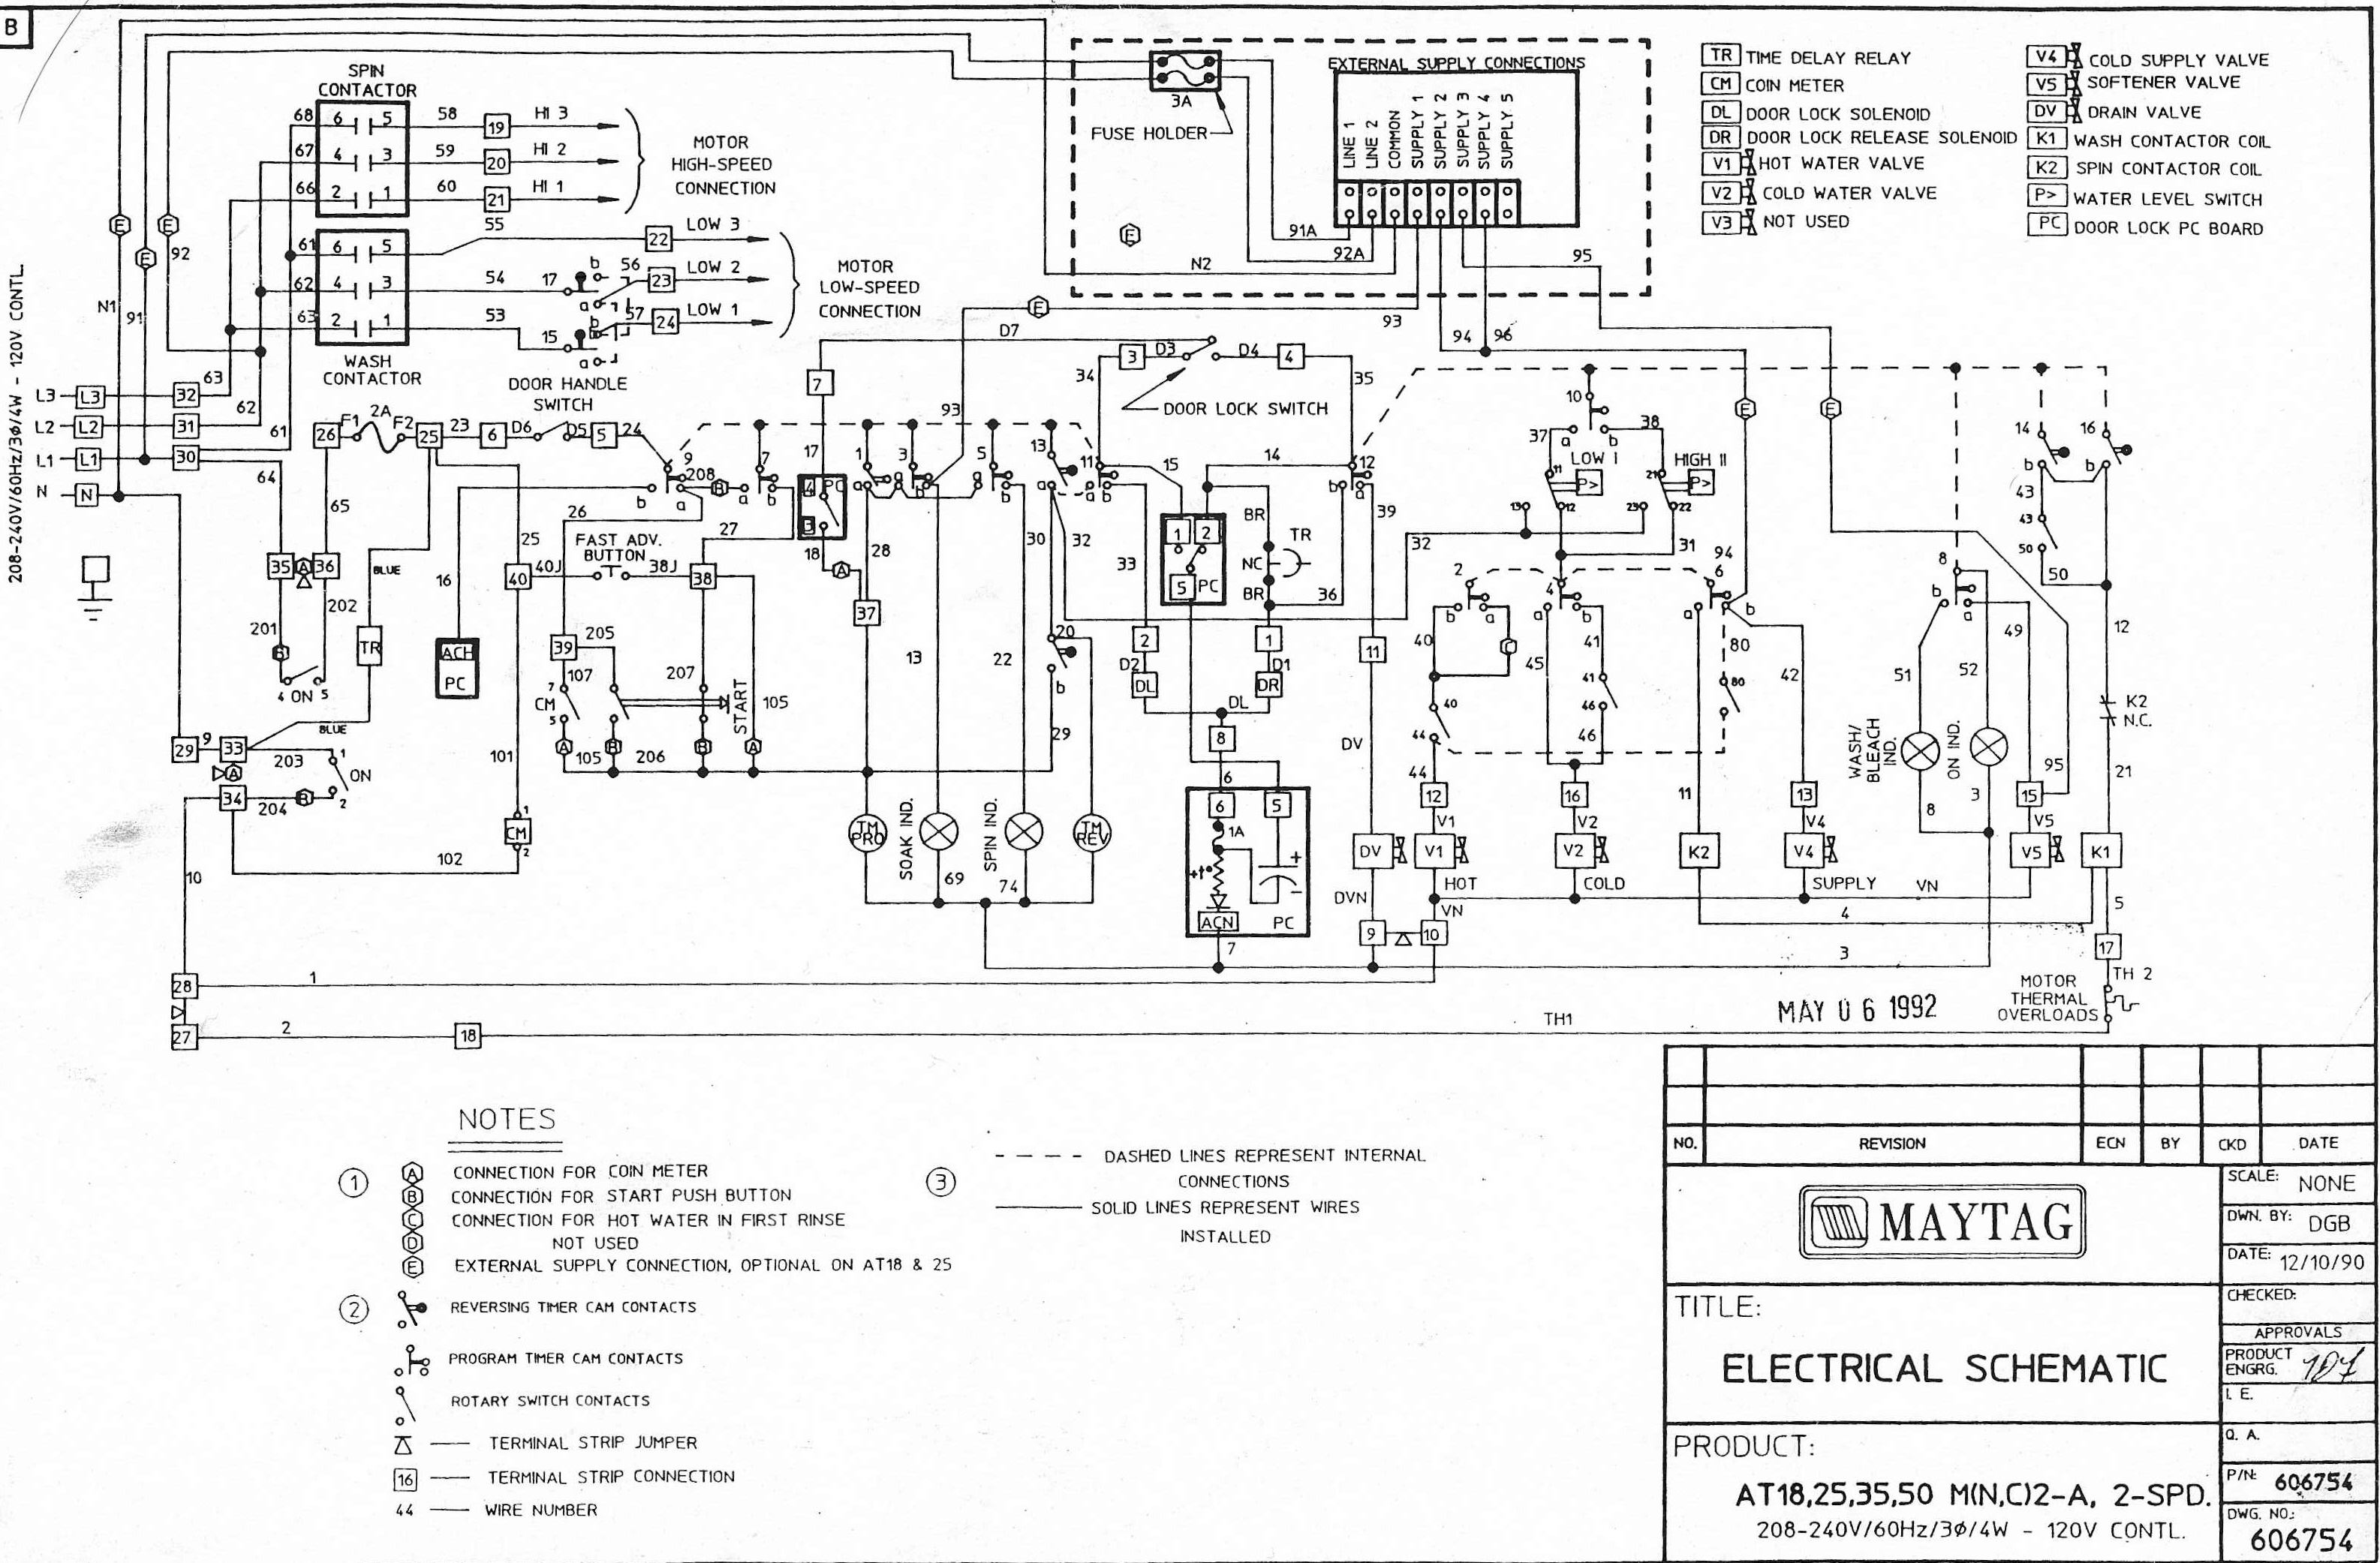 Unimac Wiring Diagram - Wiring Diagram Name on wiring diagram for amana dryer, wiring diagram for dryer cord, wiring diagram for clothes dryer, wiring diagram for estate dryer, wiring diagram for whirlpool washer, wiring diagram for dryer motor, wiring diagram for hotpoint dryer, wiring diagram for maytag dryer, wiring diagram for samsung washer, manual for frigidaire dryer, parts for frigidaire dryer, wiring diagram for roper dryer, wiring diagram for sears dryer, wiring diagram for speed queen dryer, wiring diagram for front load washer, wiring diagram for dryer outlet, wiring diagram for kenmore dryer, wiring diagram for electrolux dryer, wiring diagram for admiral dryer, wiring diagram for air dryer,